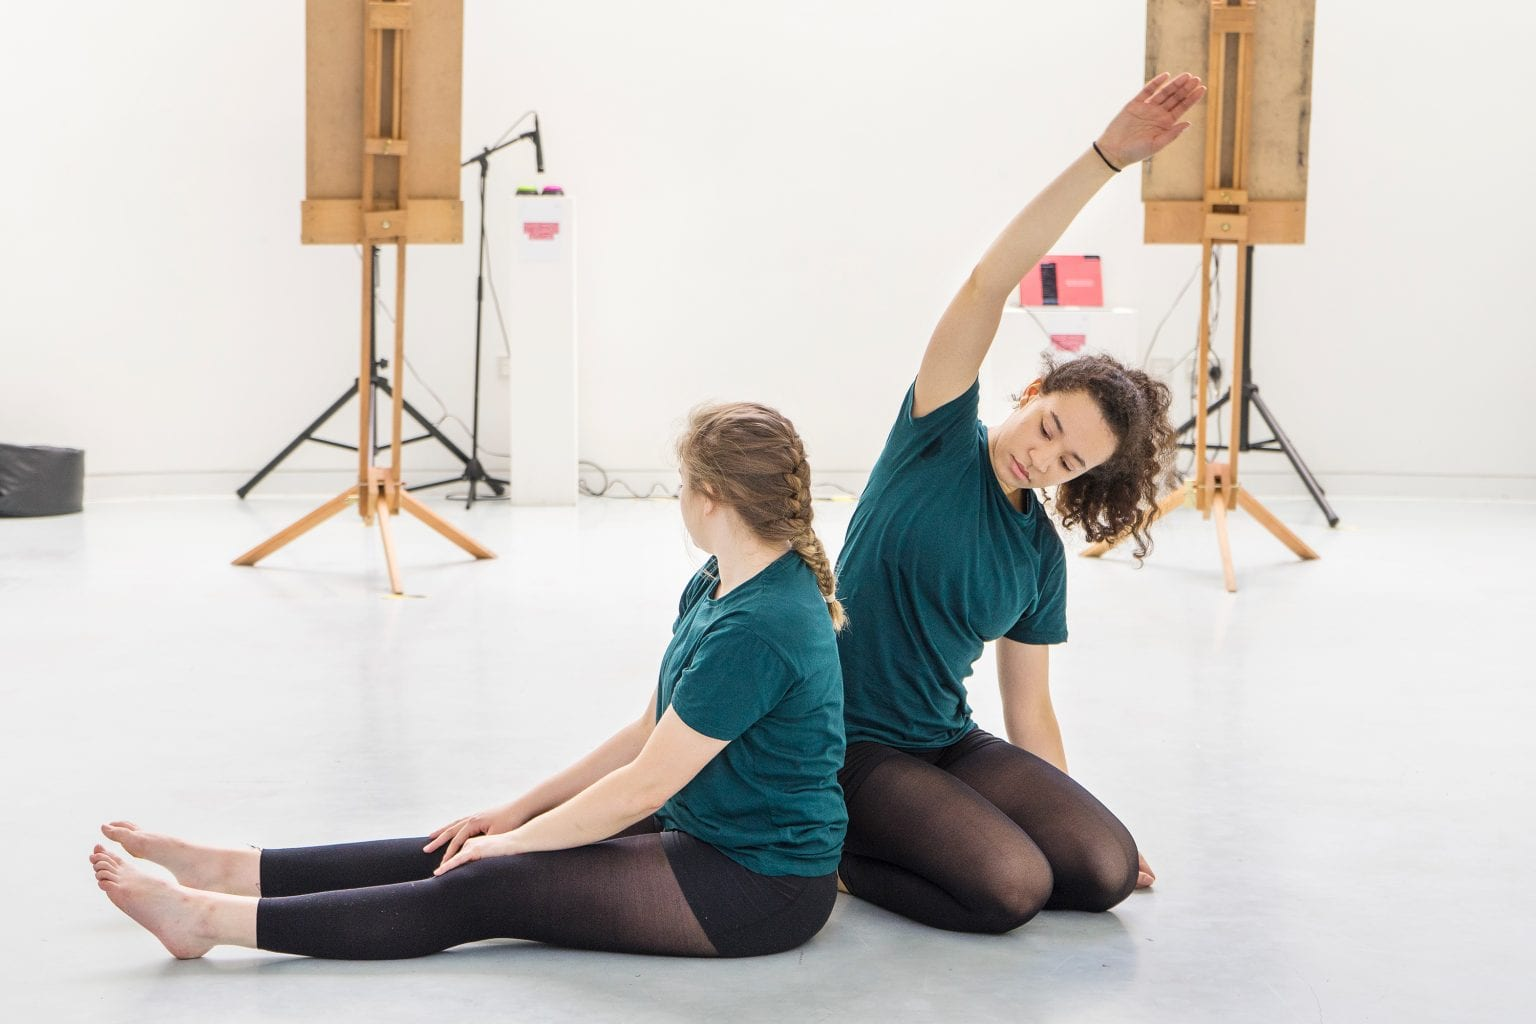 <p>A Day Of Dance</p>